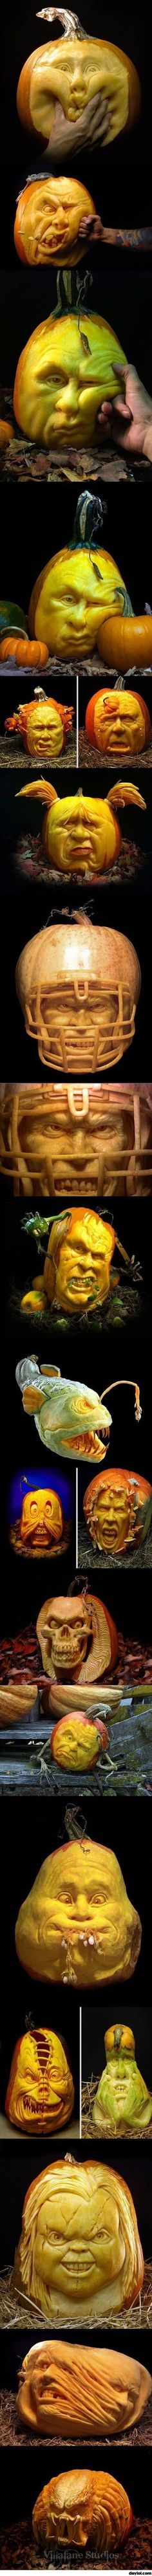 Amazing pumpkin carvings @Carina Monroy you should do this with your pumpkins ;)